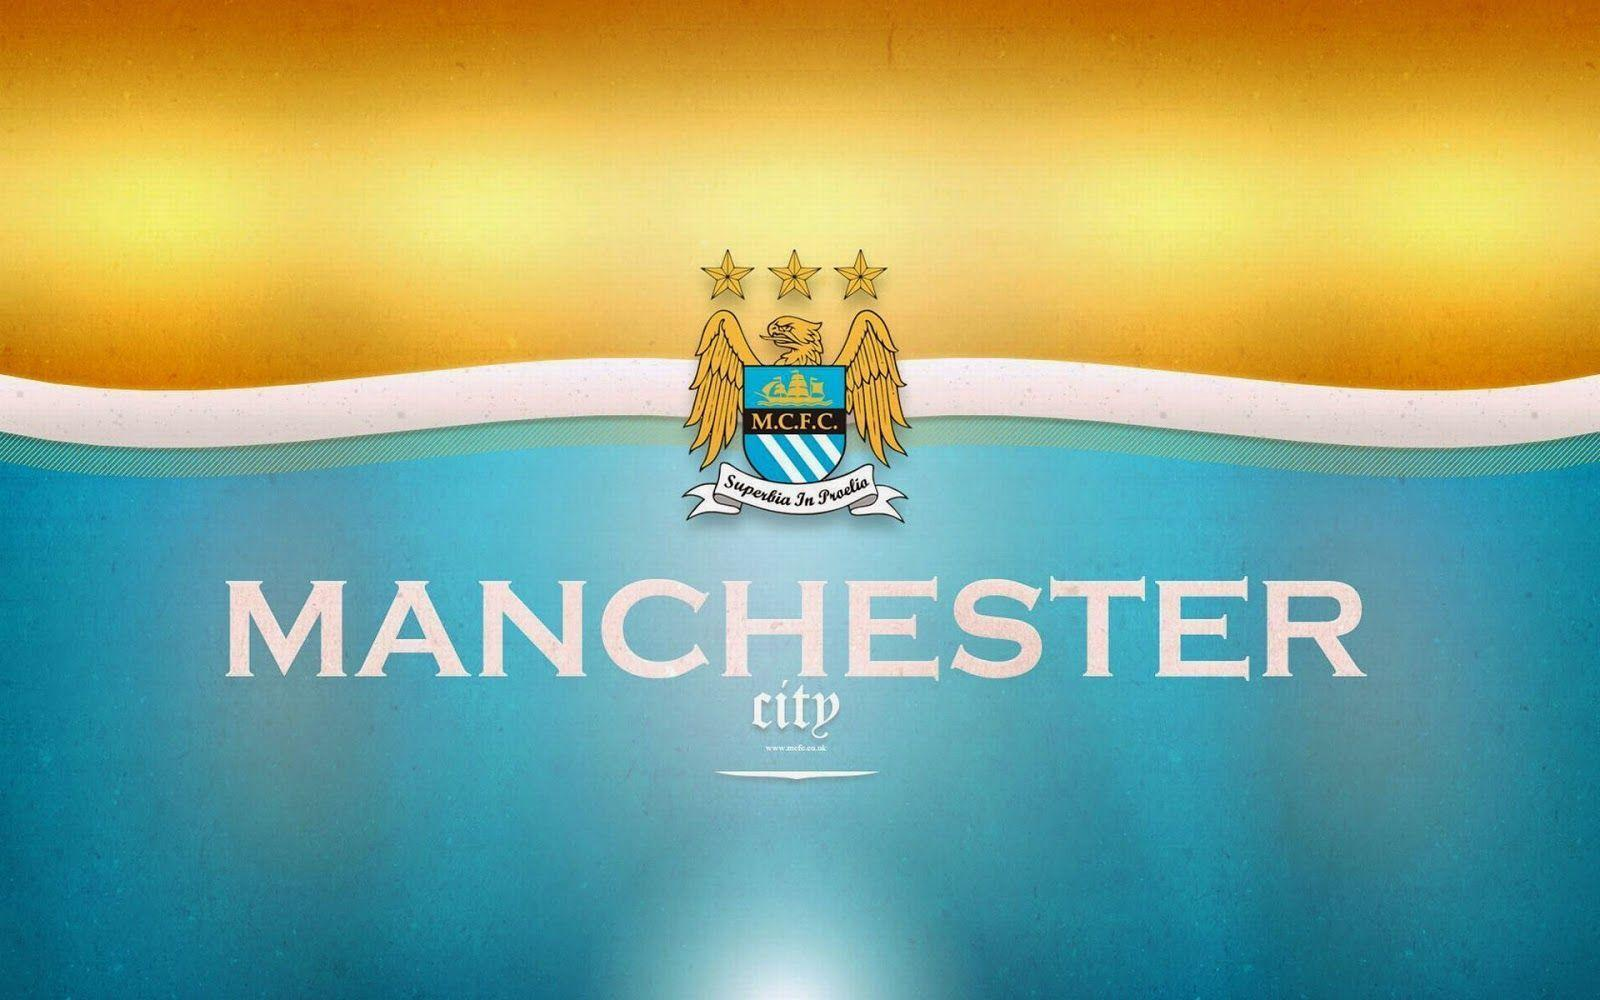 Free Download Manchester City Wallpapers 2016 1600x1000